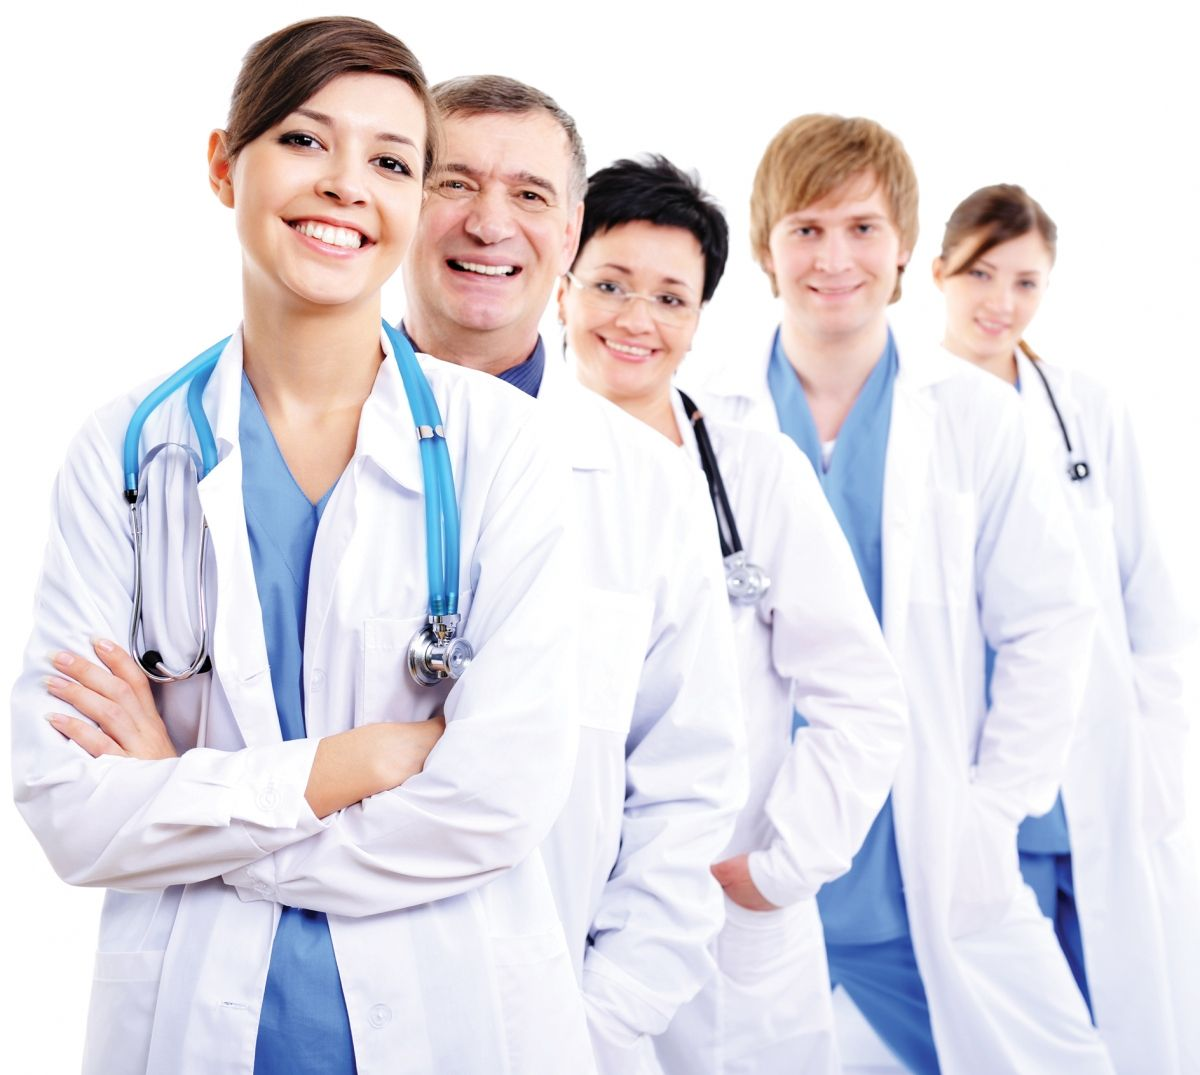 Come and meet the hemorrhoid specialist Los Angeles' staff